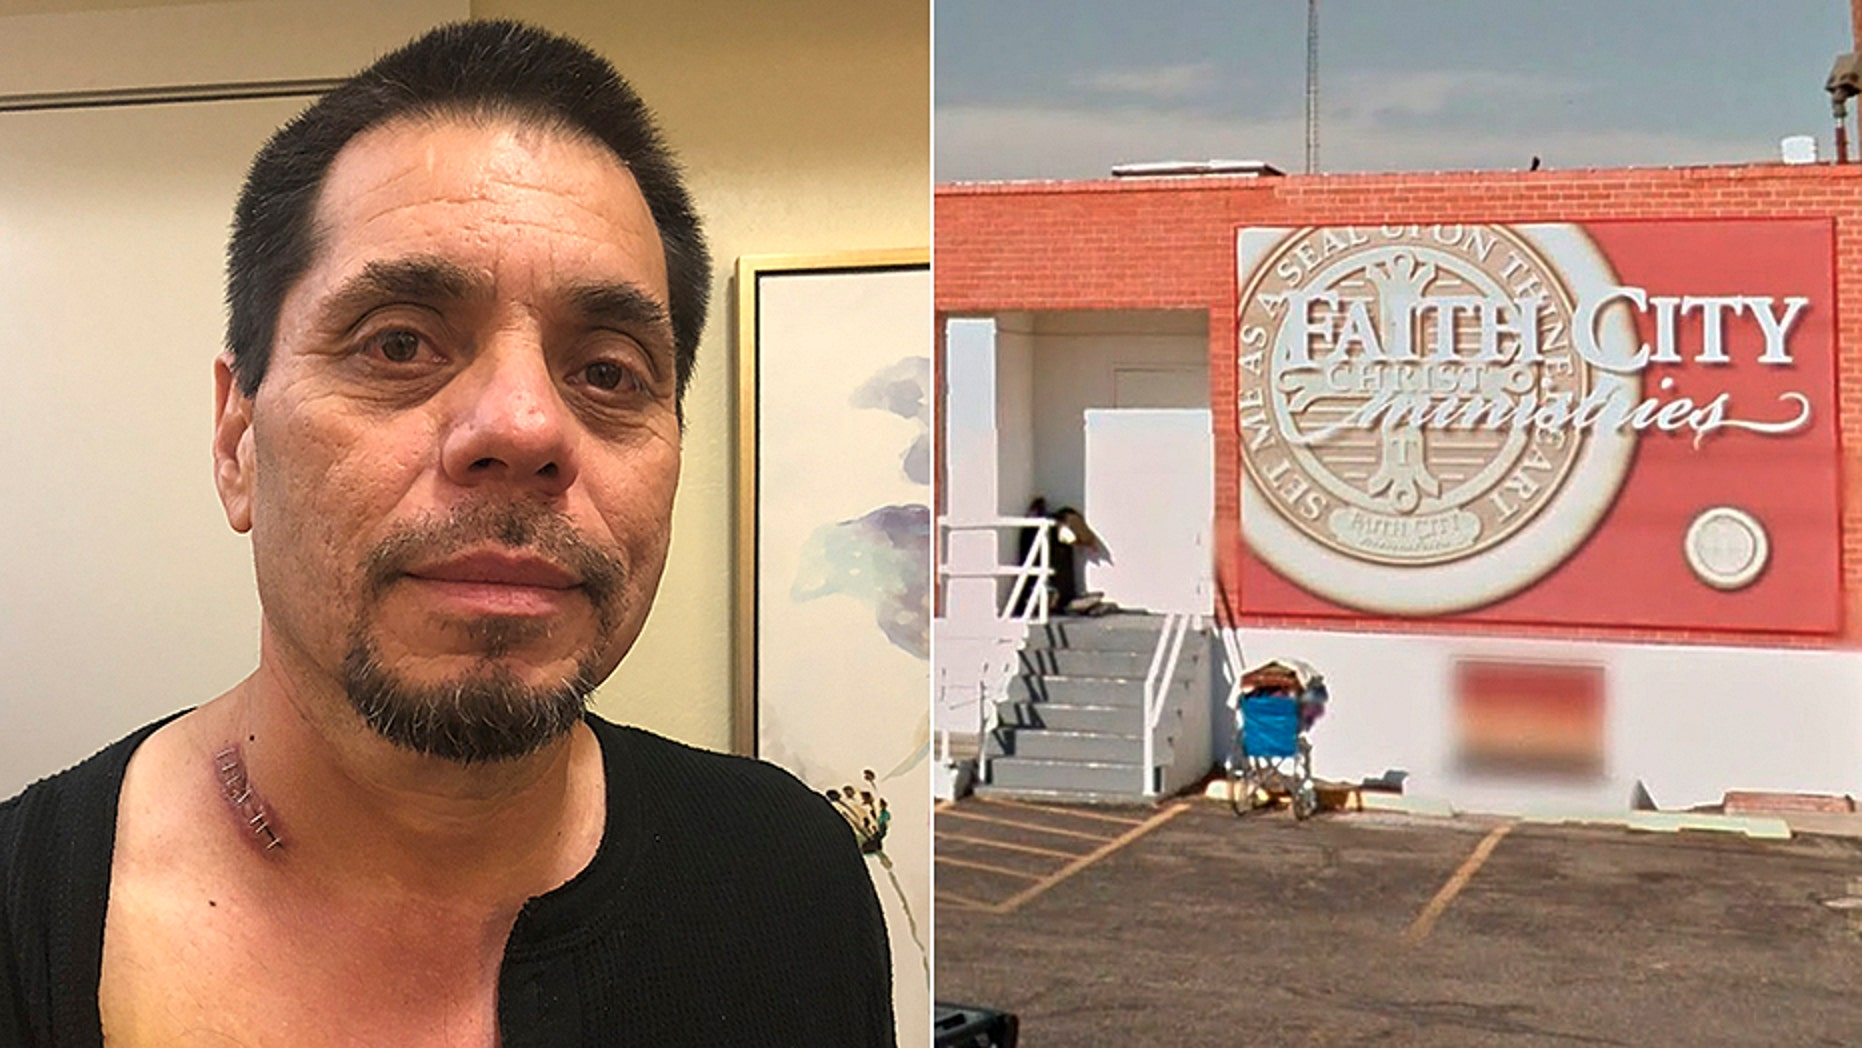 Tony Garces, who disarmed a gunman at the Faith City Mission, was shot after police arrived.